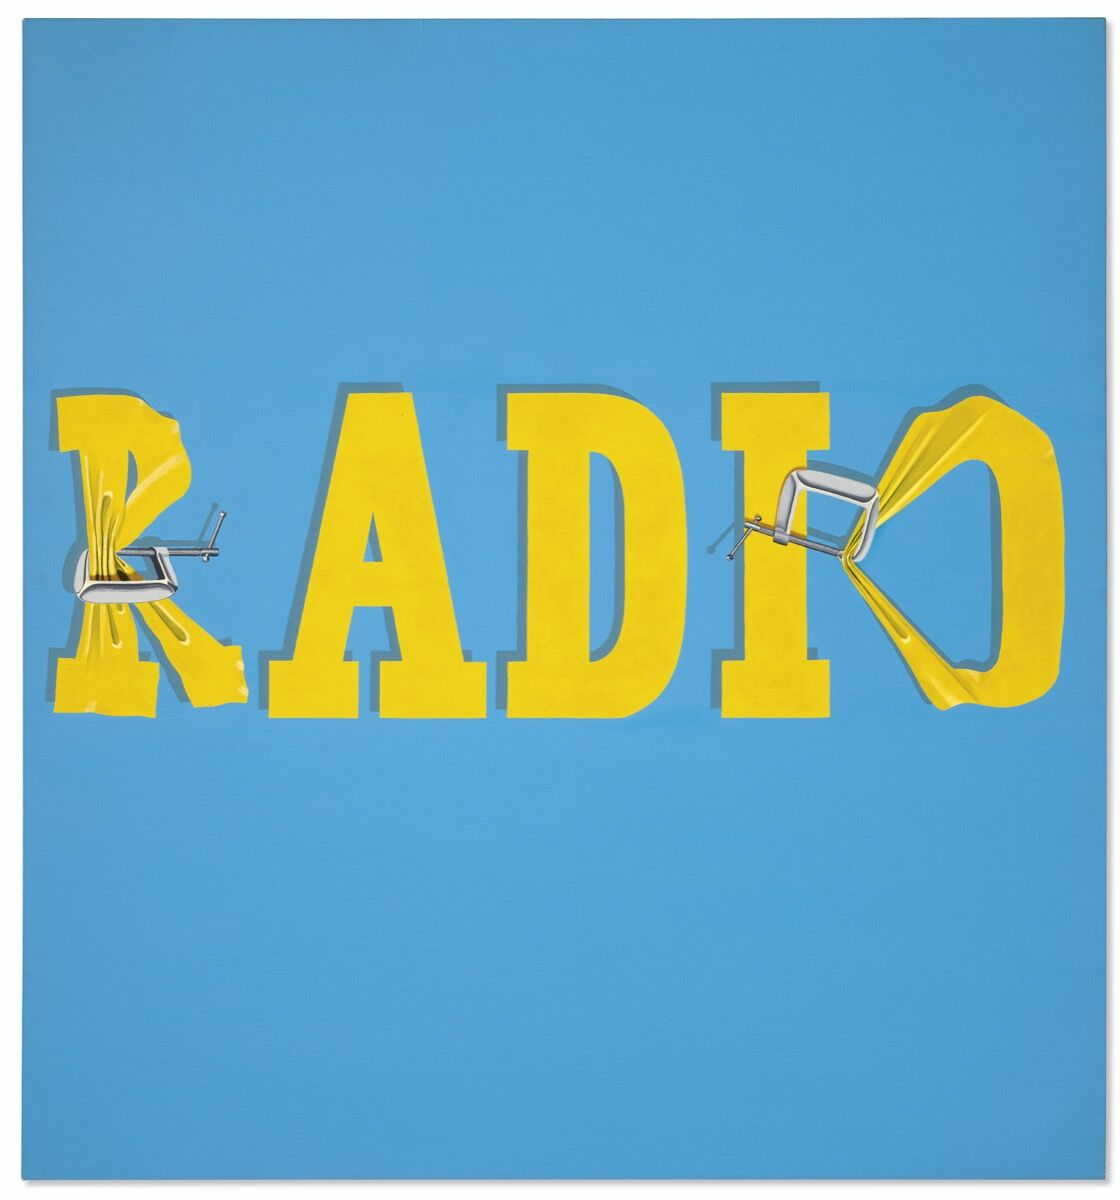 Ed Ruscha, Hurting the Word Radio #2 , 1964. Courtesy of Christie's.